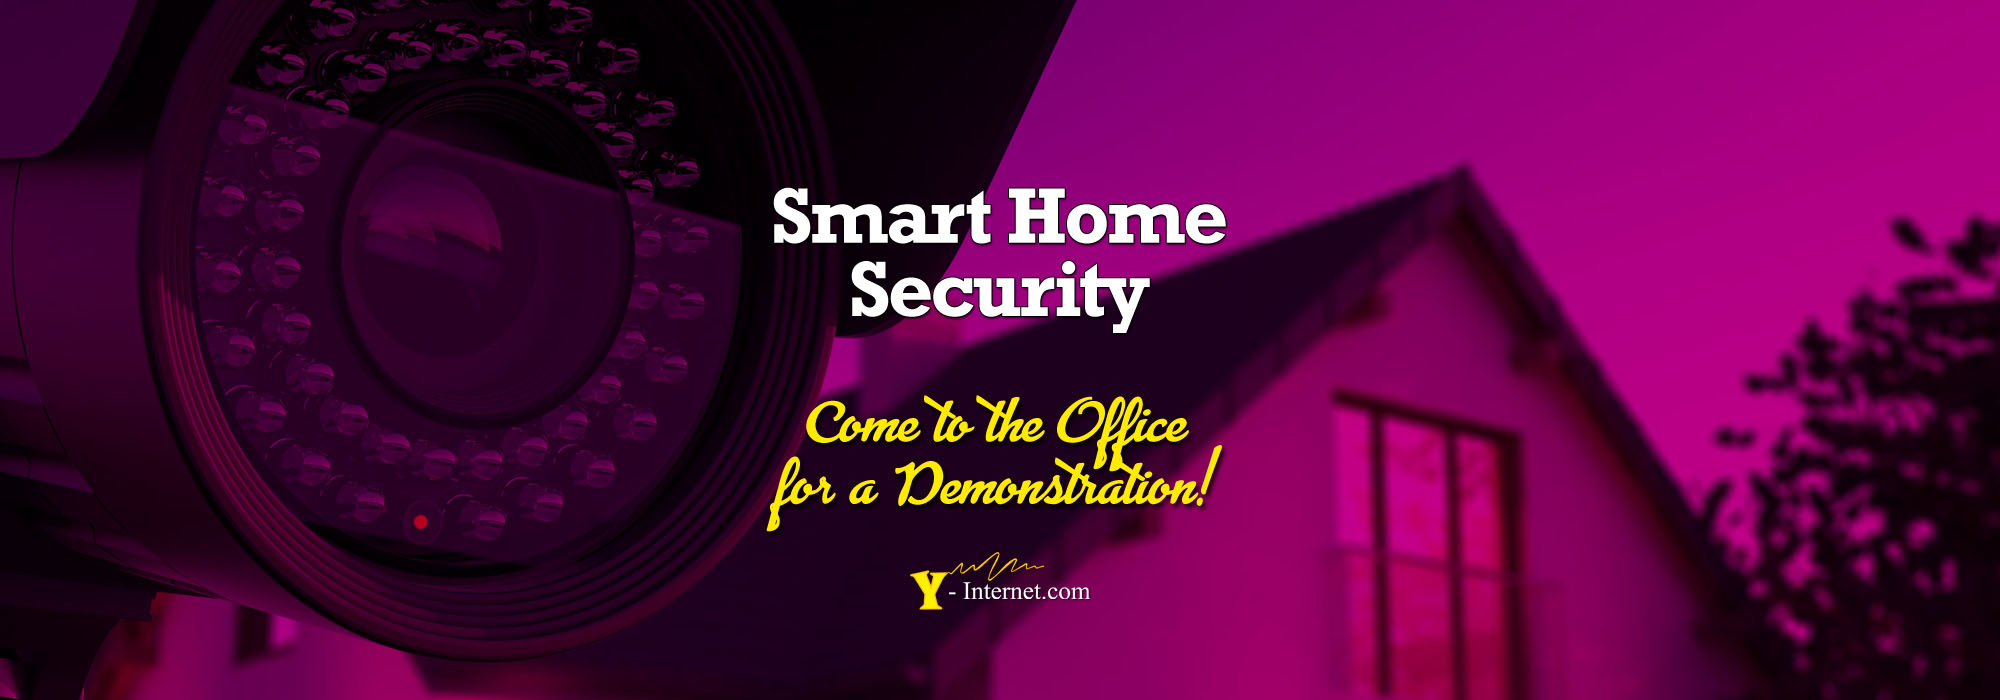 Smart Home Security Y-Internet Sitio de Calahonda